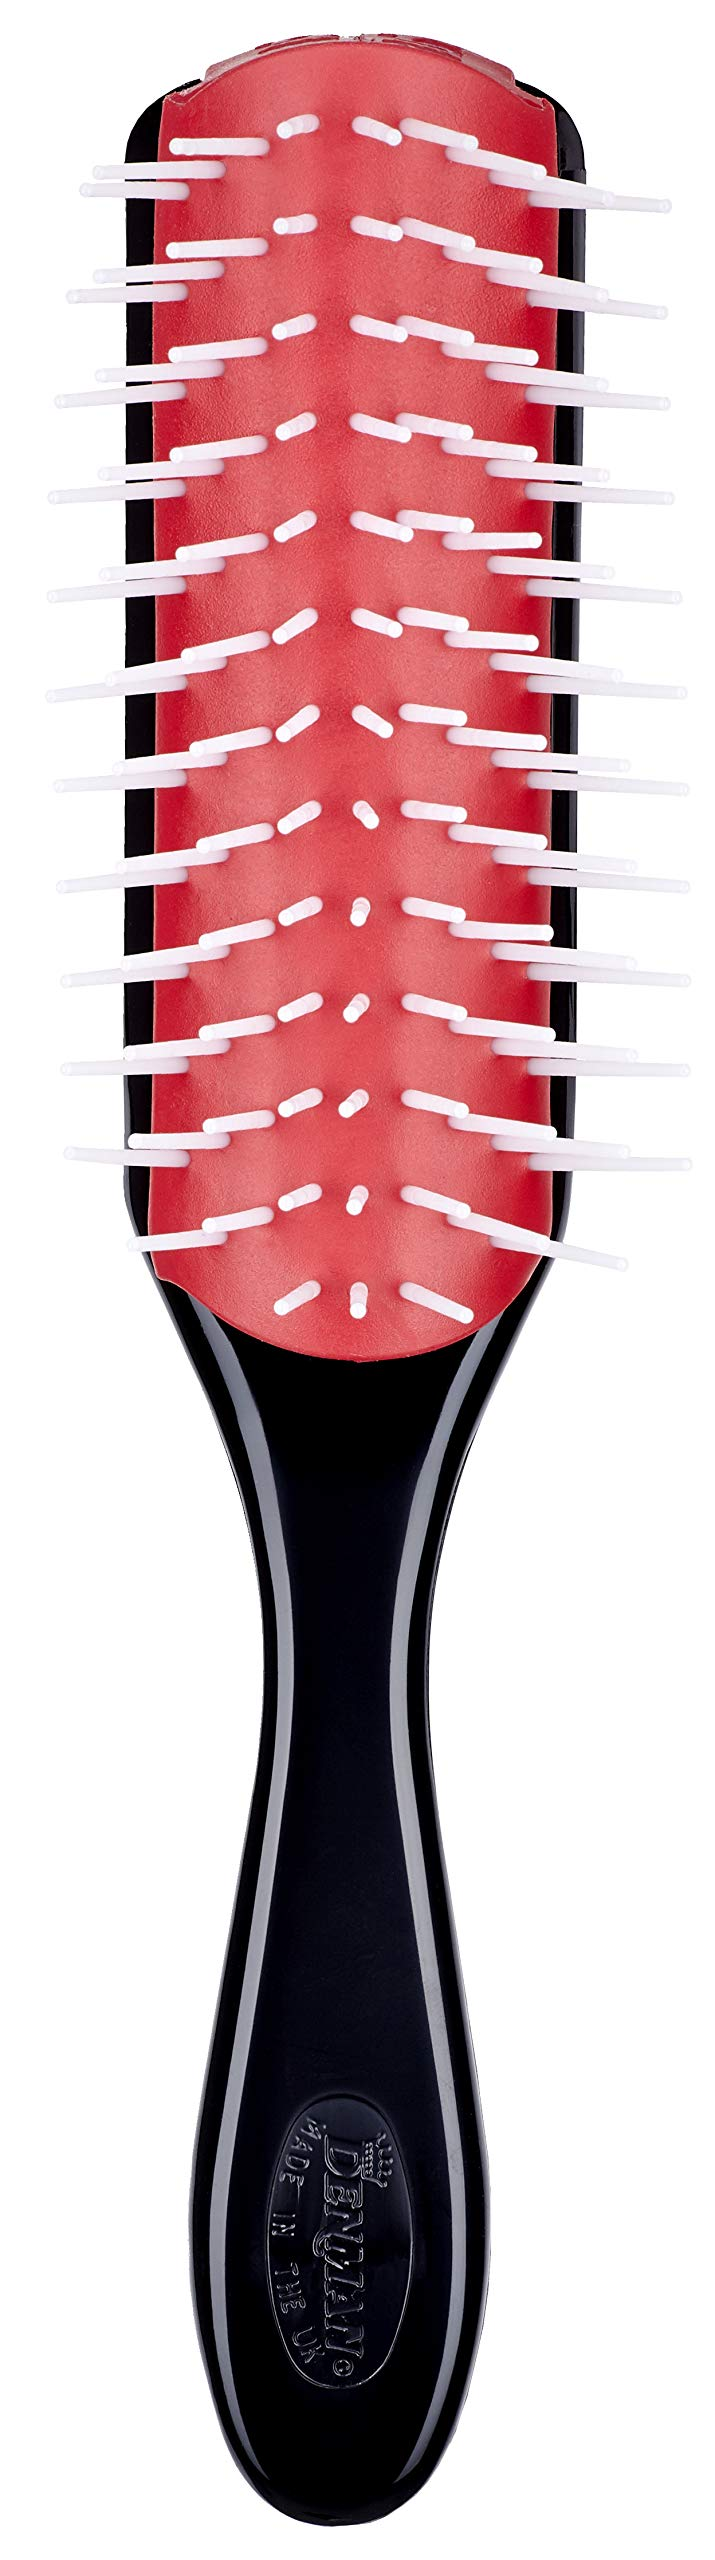 Denman 9 Row D41 Women Styling Large Hair Brush for Detangling & Volumizing - Anti-static Rubber Pad - Nylon Bristle by Denman